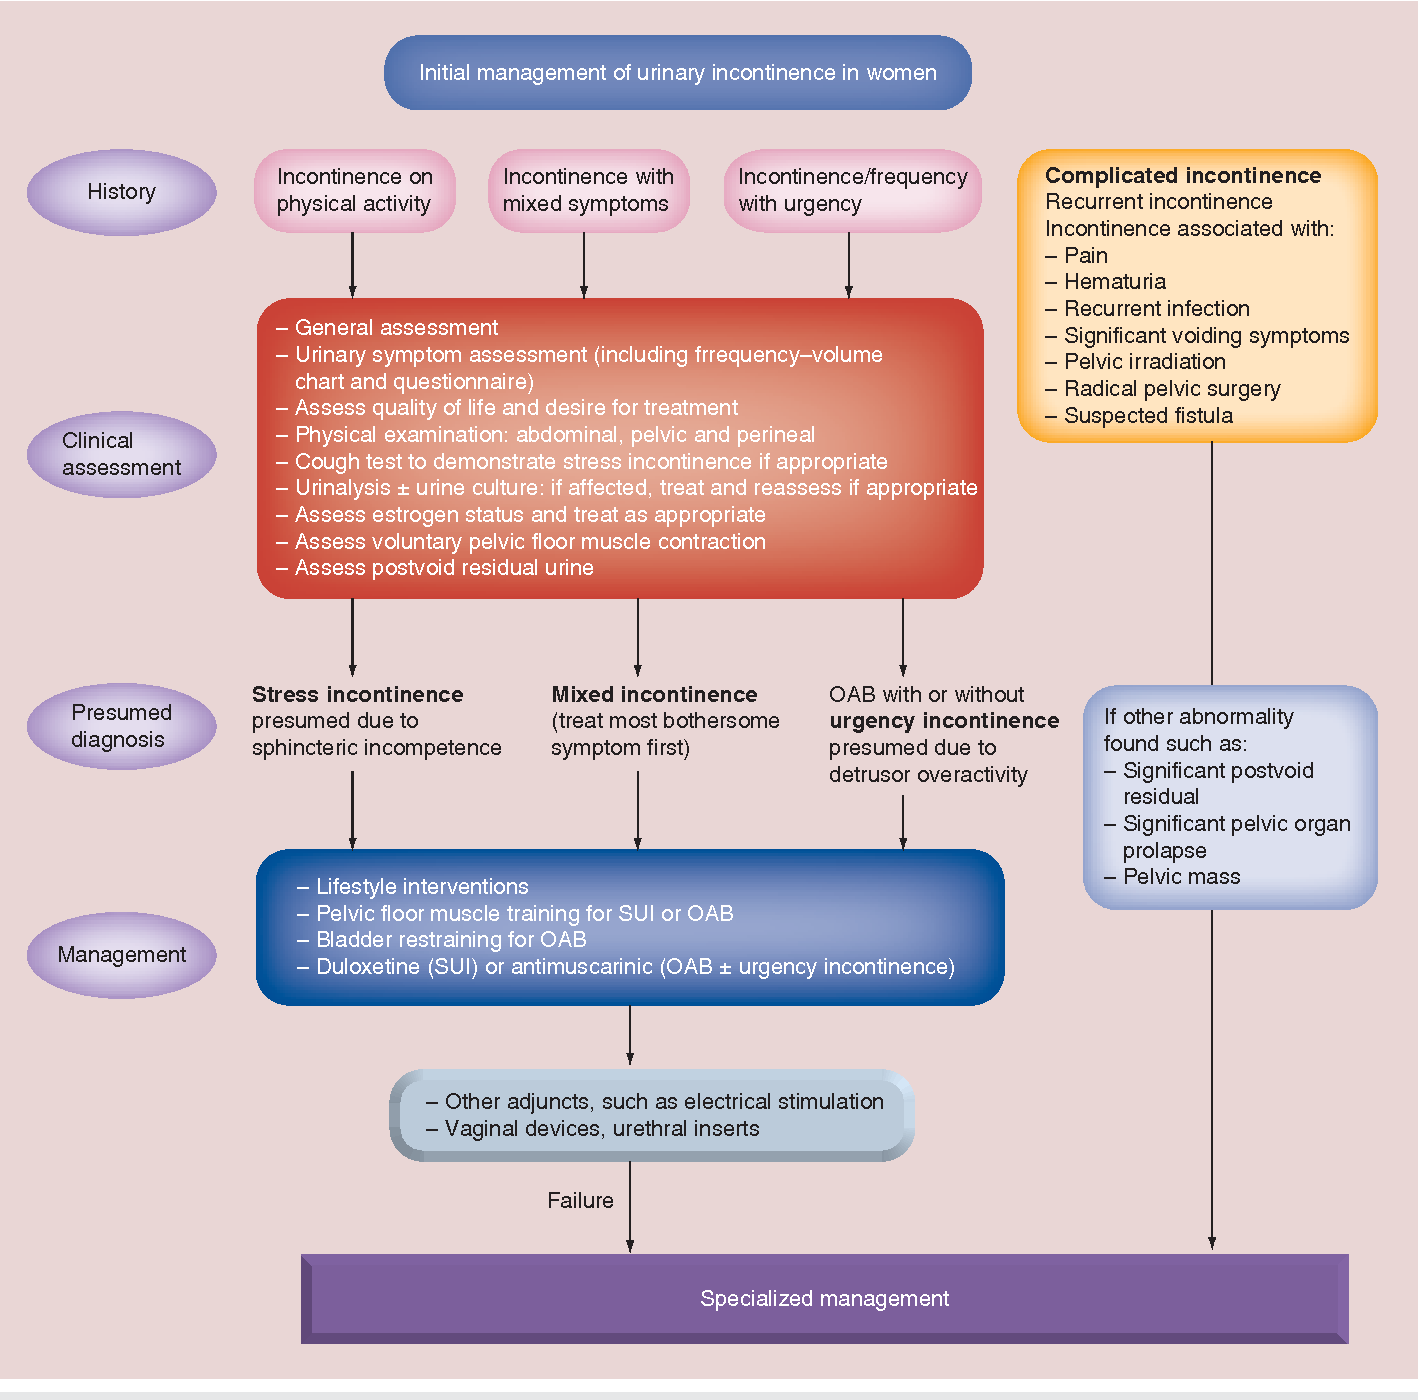 Urinary incontinence in the young woman: treatment plans and